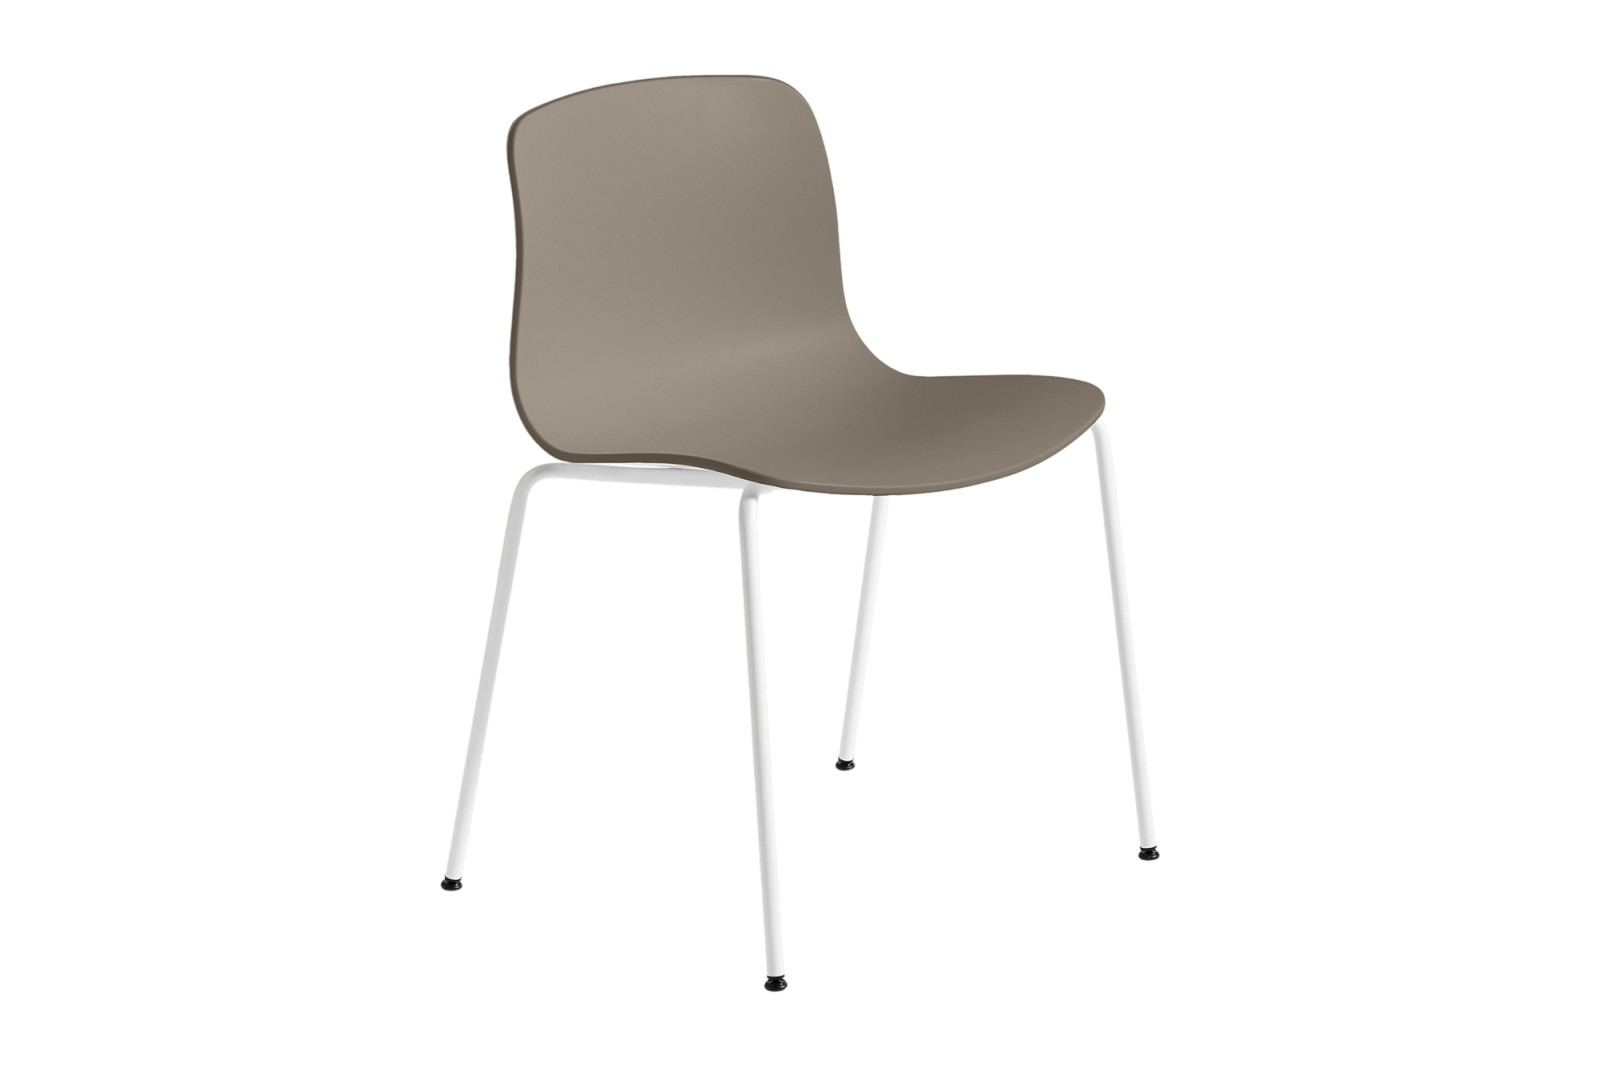 About A Chair AAC16 Khaki, White Powder Coated Steel